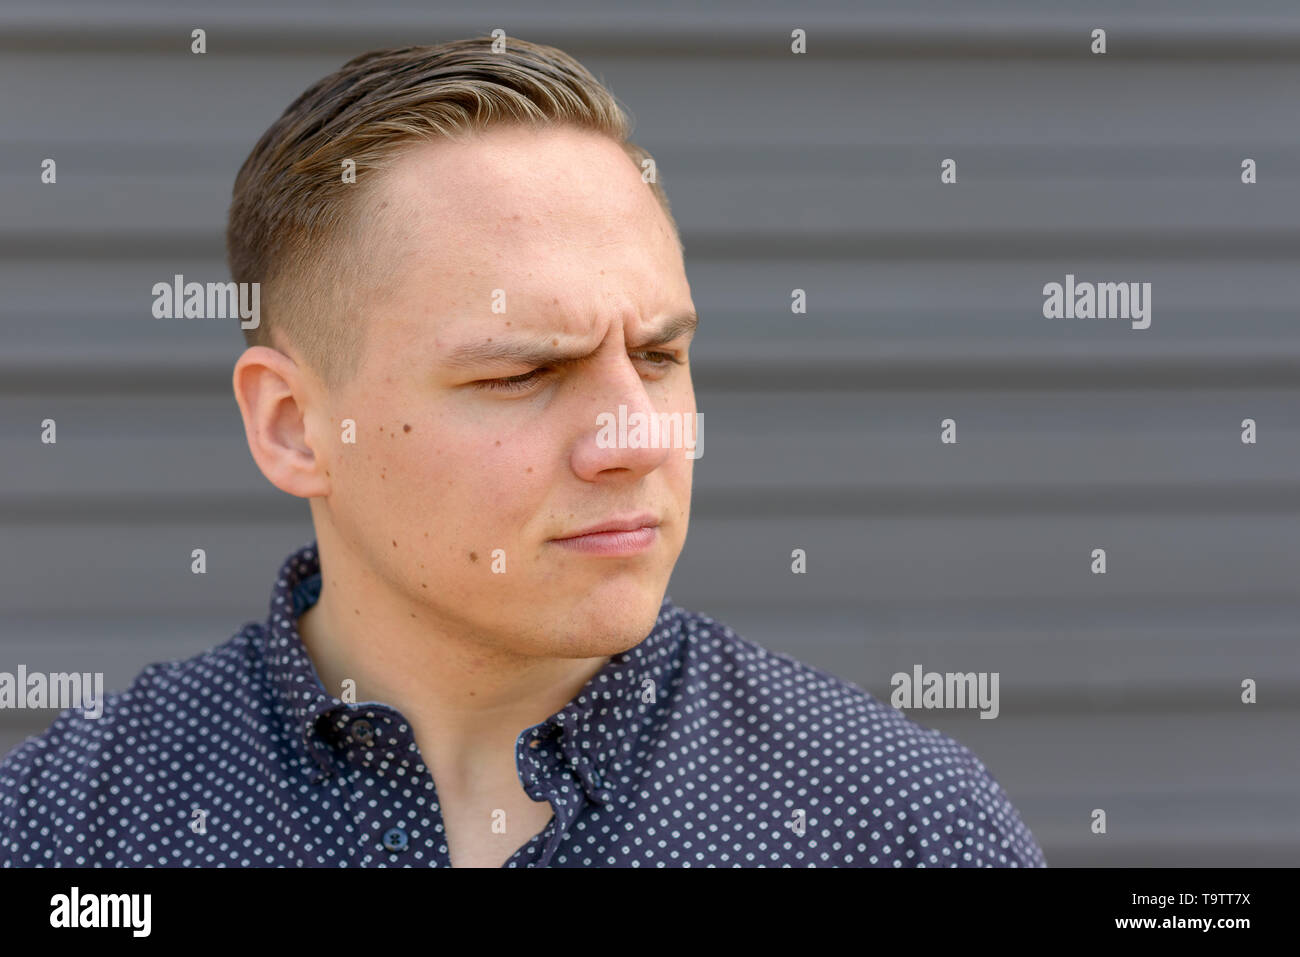 Close up of a Thoughtful stressed young man looking aside with a dubious expression - Stock Image